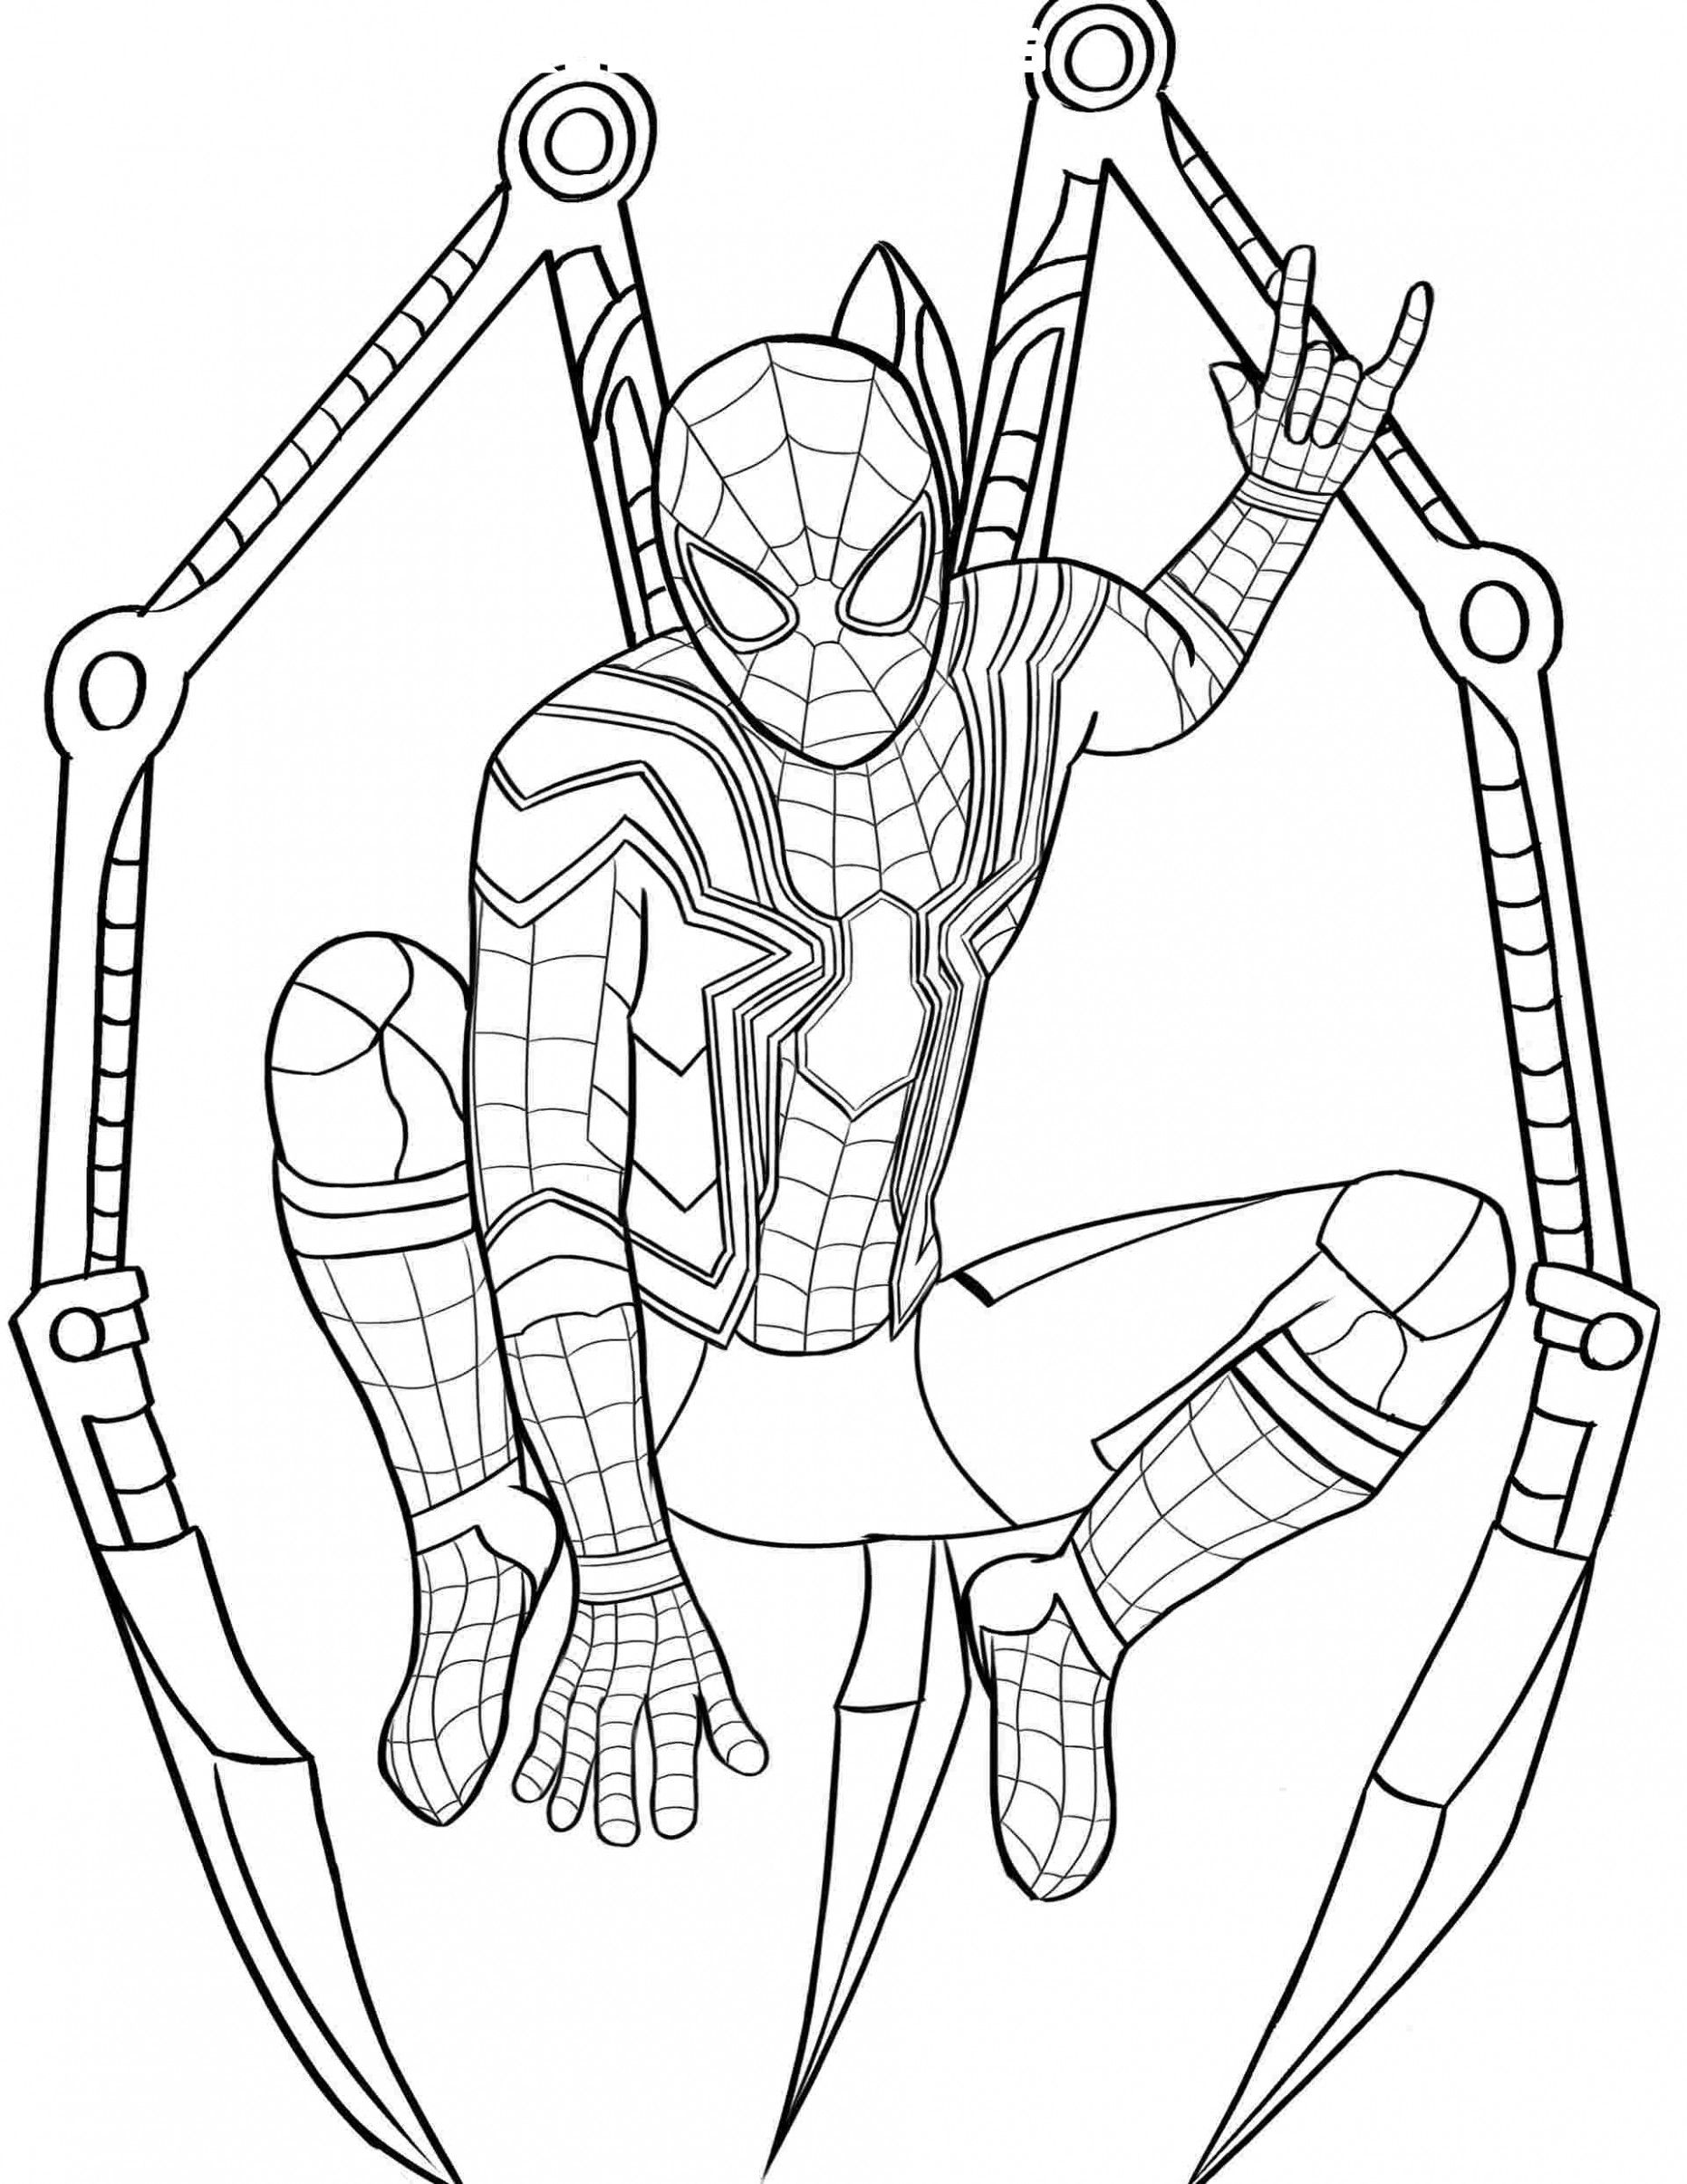 9 Spiderman Colouring Pages Spider Coloring Page Avengers Coloring Avengers Coloring Pages